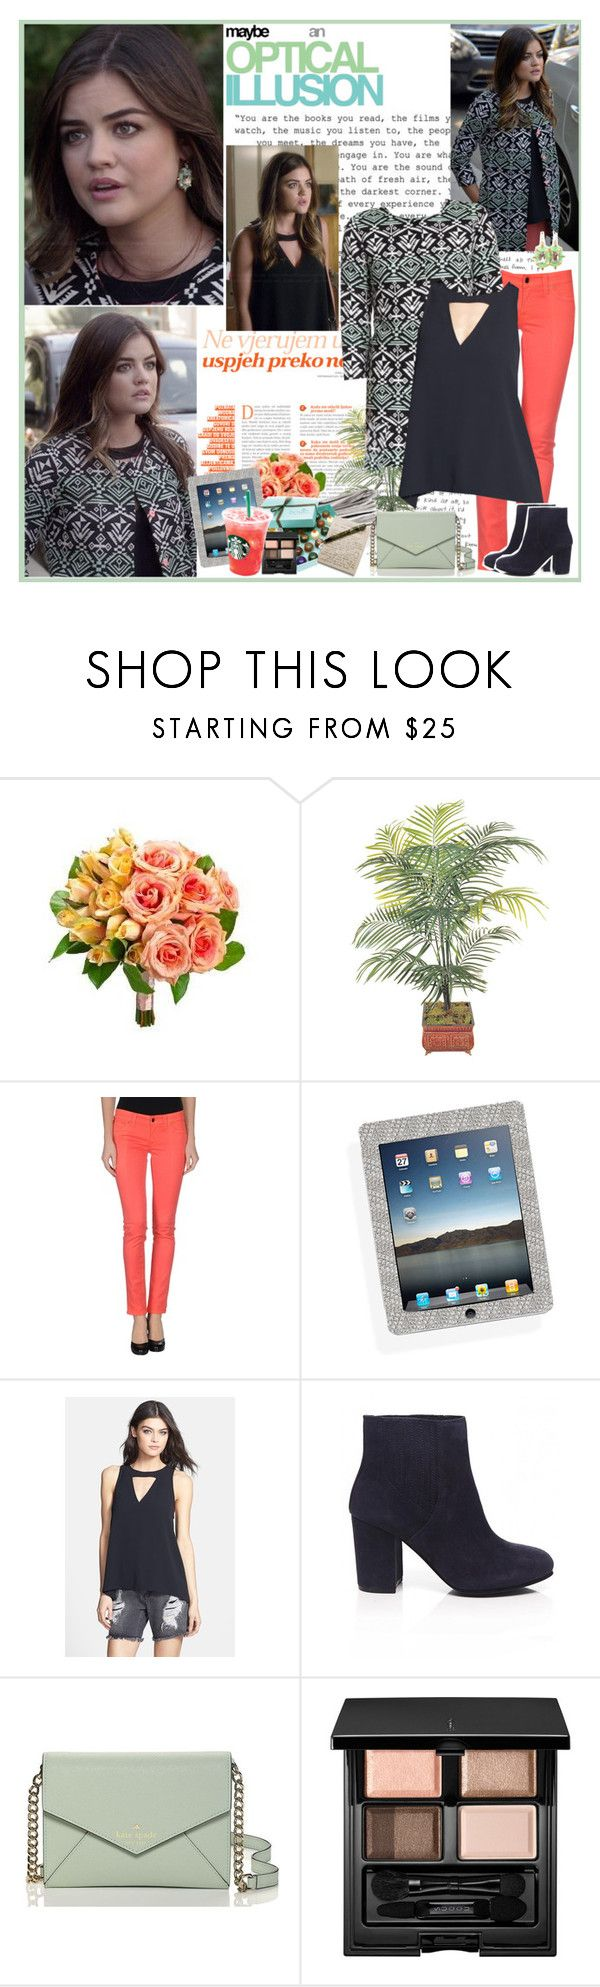 """Aria Montgomery"" by mery90 ❤ liked on Polyvore featuring S.O.S By Orza Studio, Leith, Ash, Hostess, Kate Spade, SUQQU, OPTIONS, women's clothing, women and female"